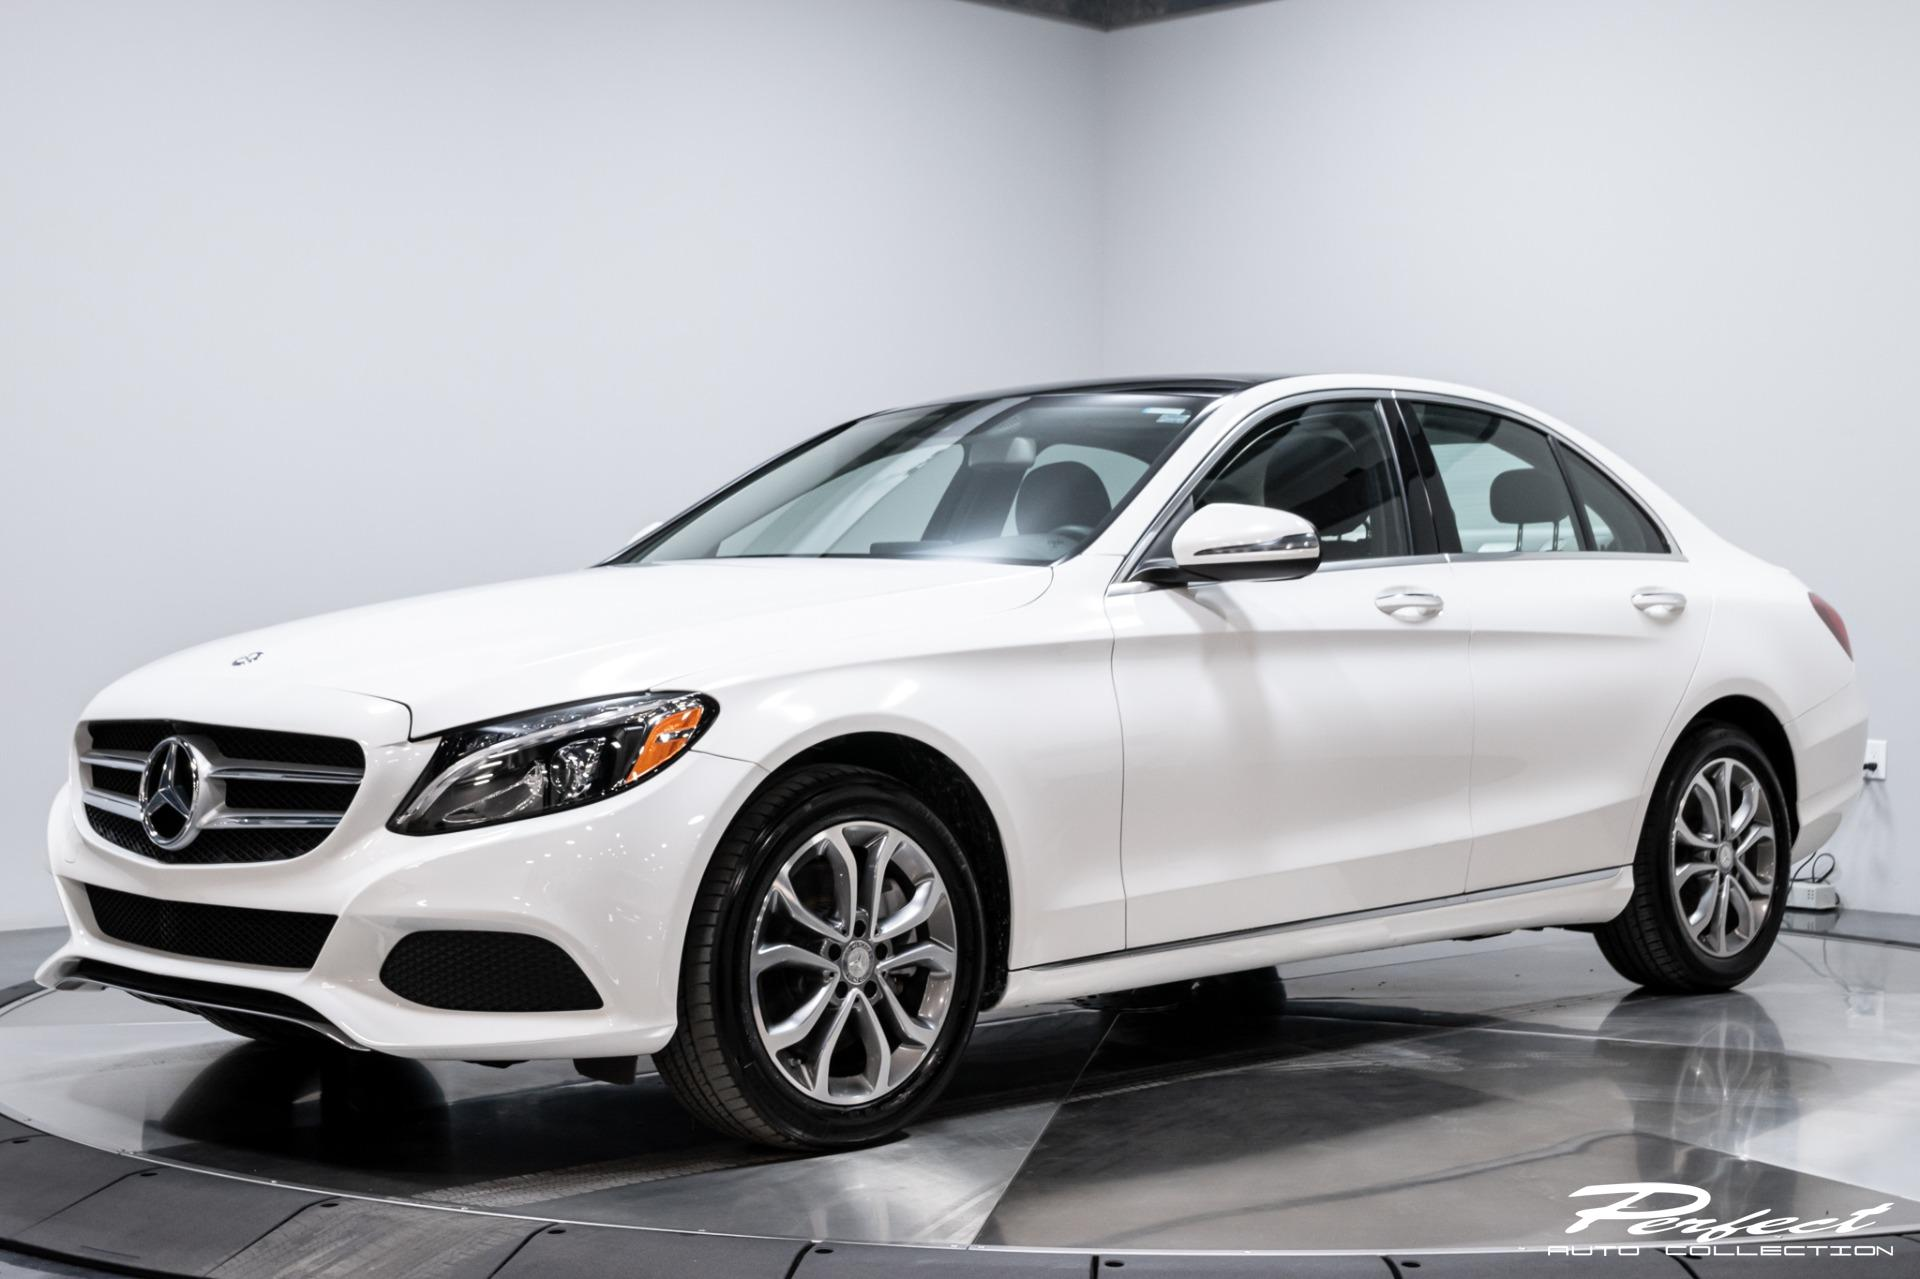 Used 2016 Mercedes-Benz C-Class C 300 4MATIC for sale Sold at Perfect Auto Collection in Akron OH 44310 1